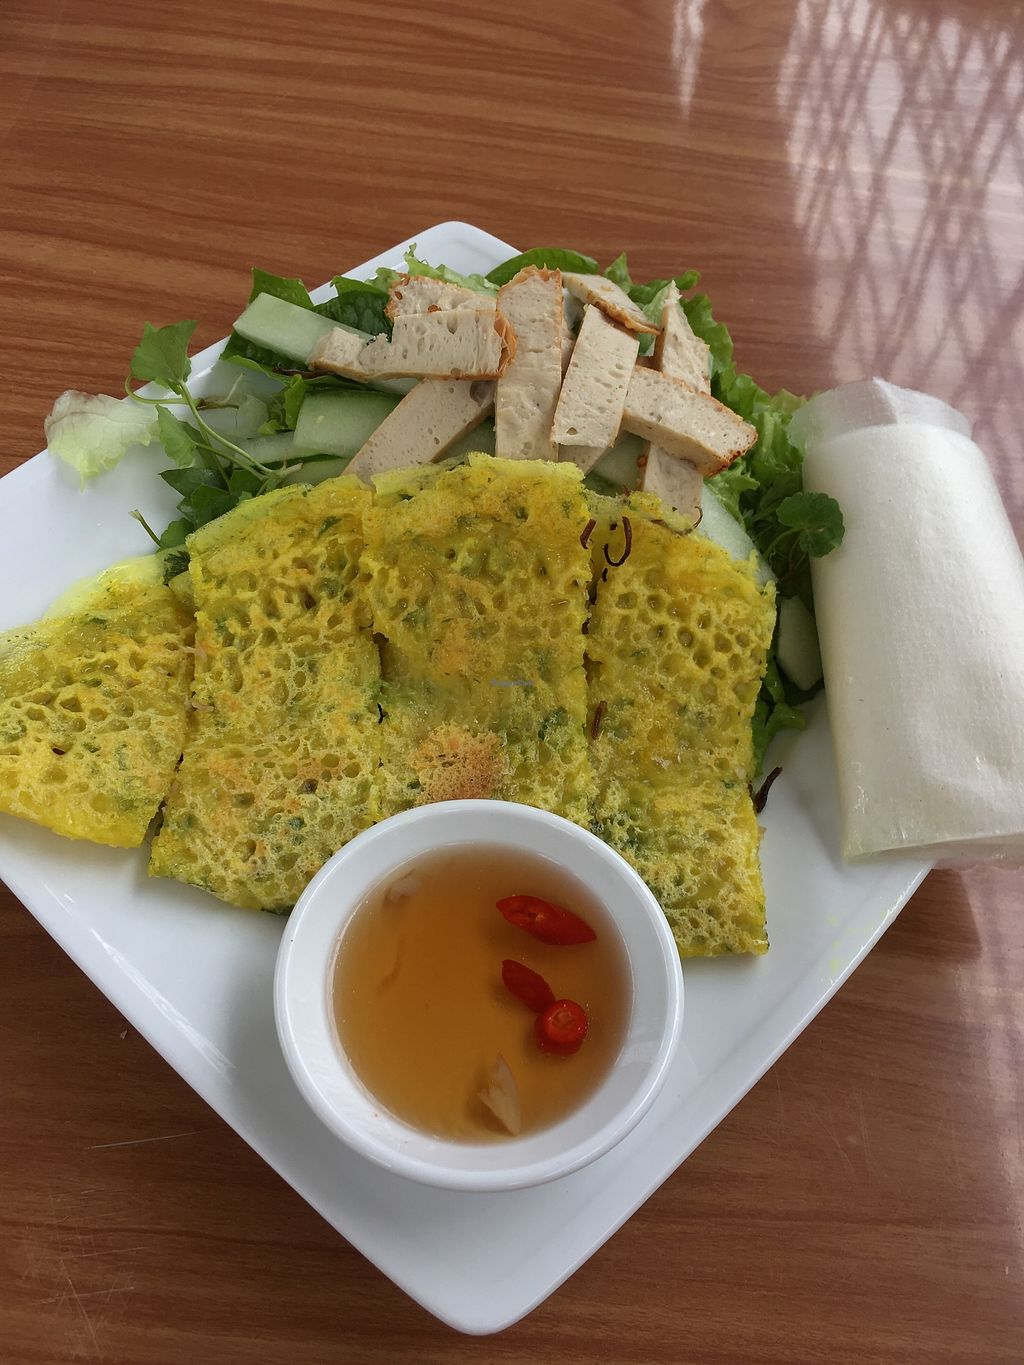 """Photo of Chay  by <a href=""""/members/profile/BellaAzi"""">BellaAzi</a> <br/>Rice pancake with filling fresh salad with seitan and rice paper to make ur own spring roll  <br/> February 26, 2018  - <a href='/contact/abuse/image/113006/364002'>Report</a>"""